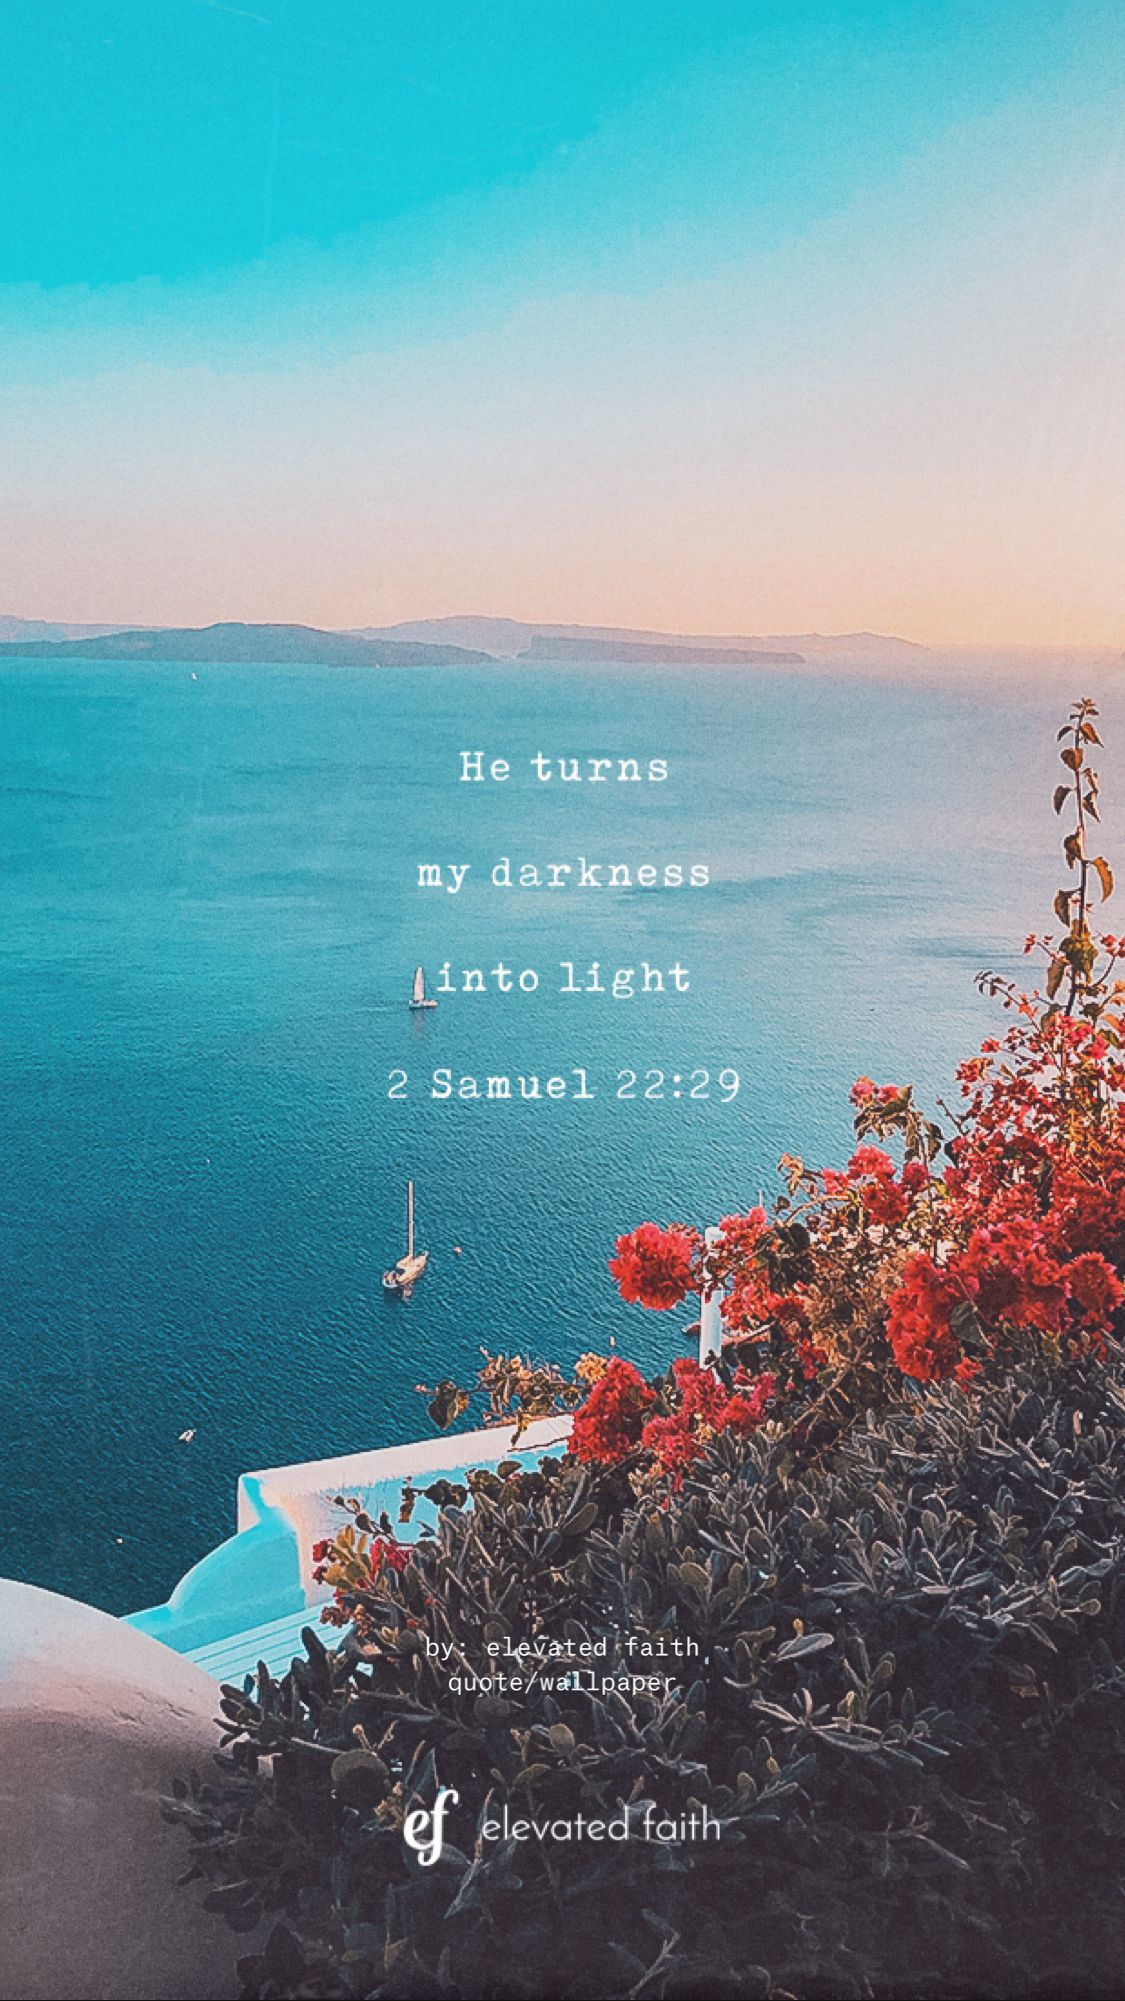 by: elevated faith quote/wallpaper